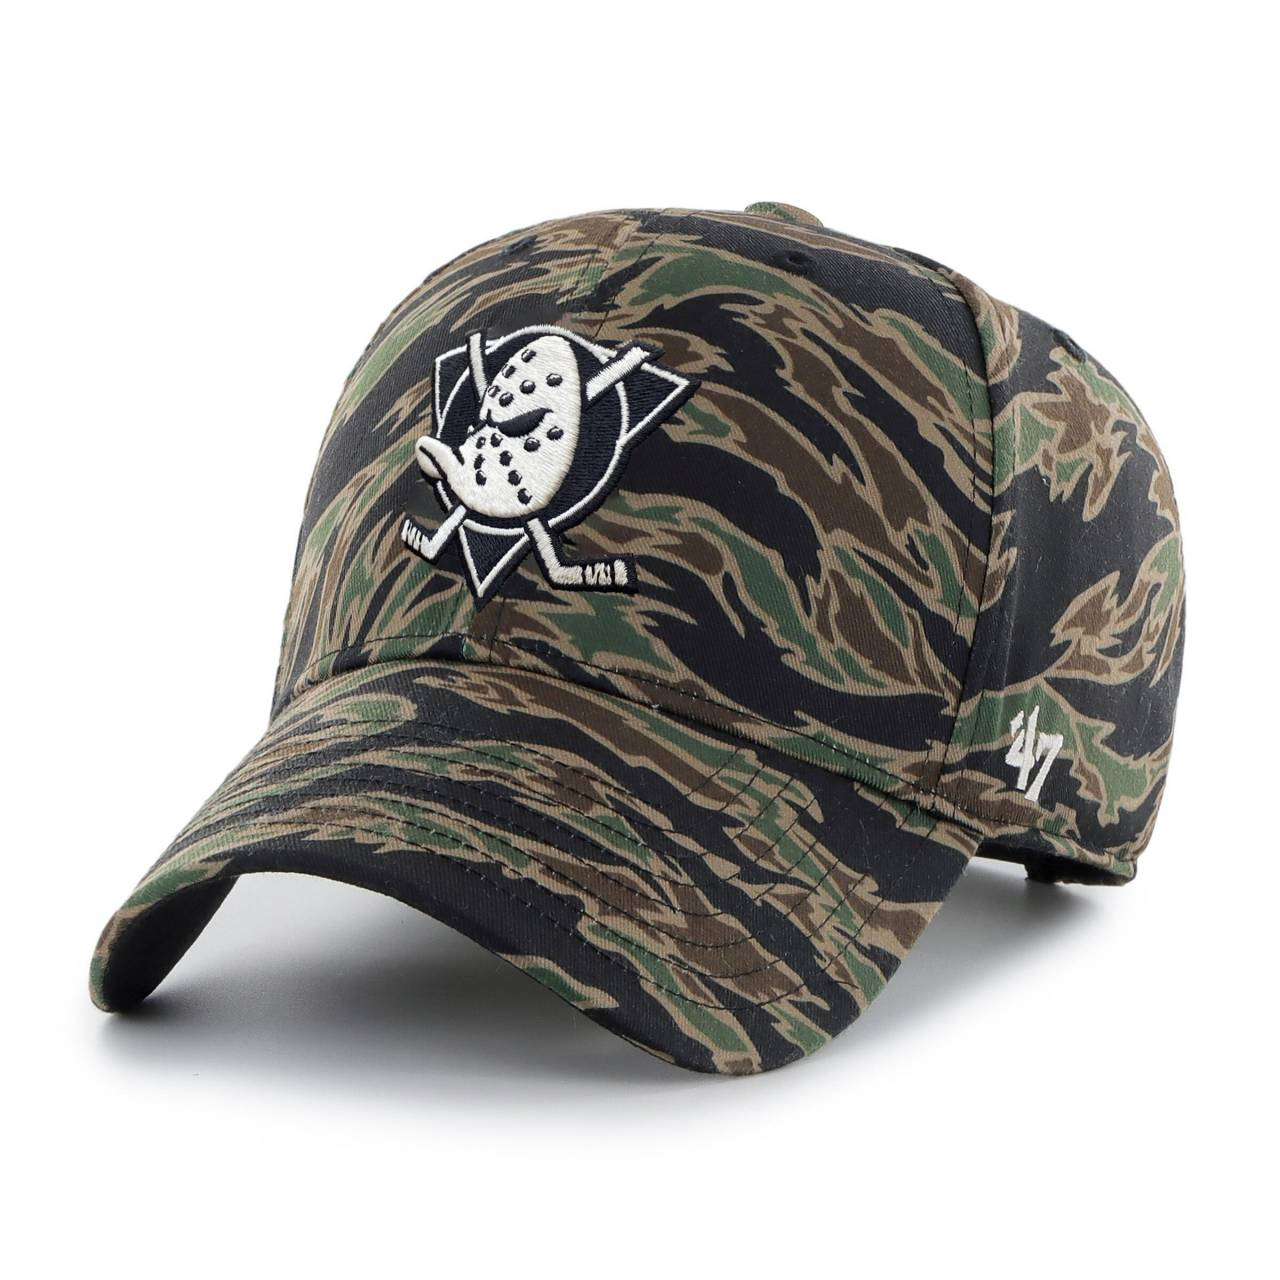 NHL ANAHEIM DUCKS DROP ZONE '47 MVP TIGER CAMO